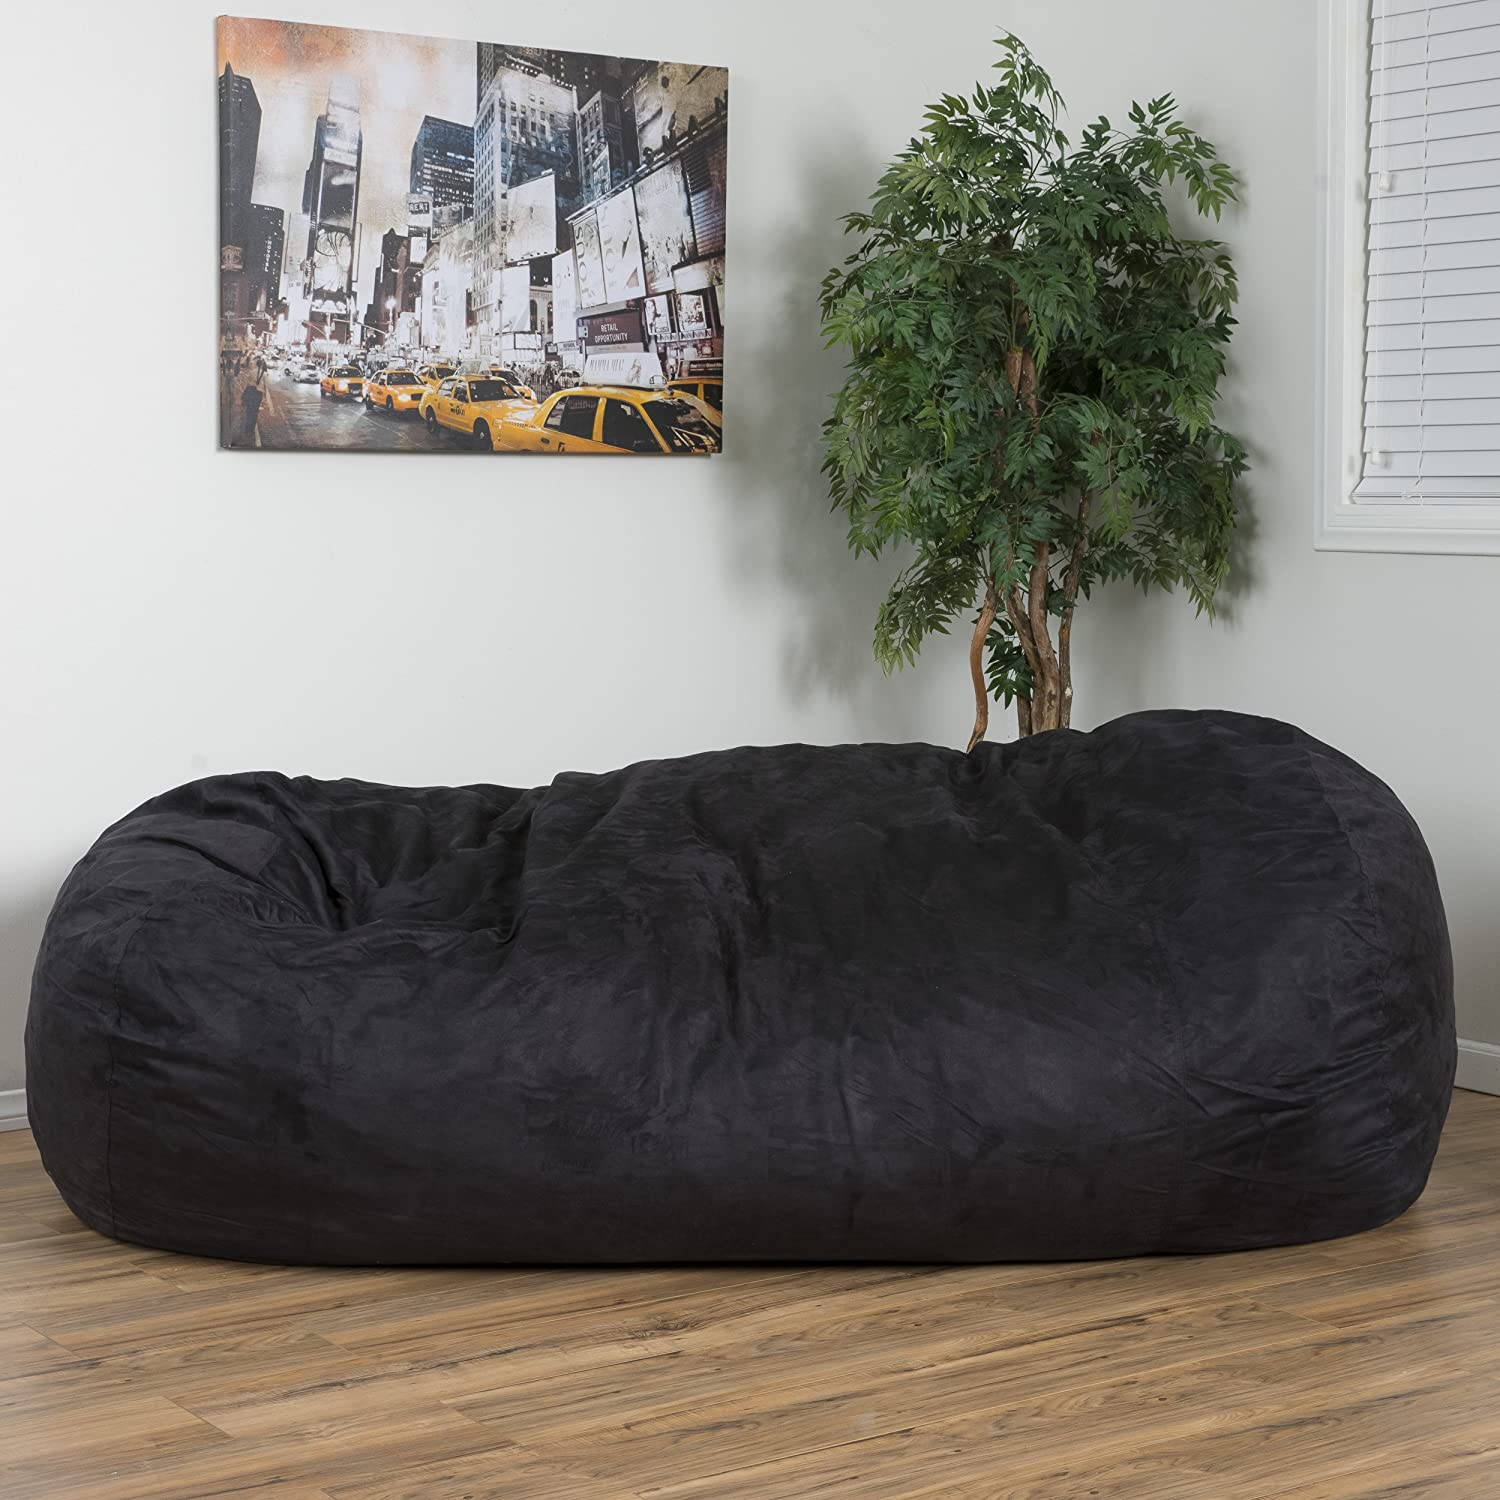 Amazon.com: David Faux Suede 8 Feet Lounger Bean Bag (Black): Kitchen U0026  Dining